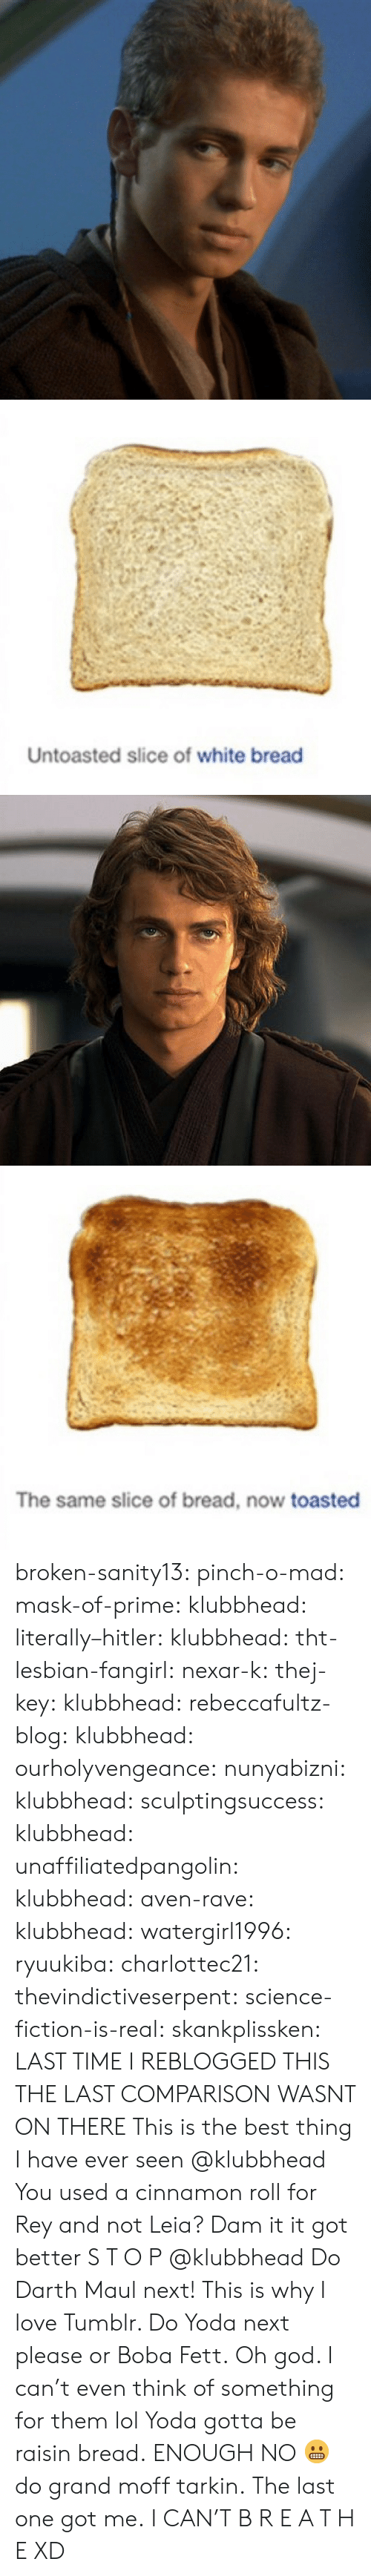 Fake, God, and Lol: Untoasted slice of white bread   The same slice of bread, now toasted broken-sanity13:  pinch-o-mad:   mask-of-prime:  klubbhead:  literally–hitler:  klubbhead:  tht-lesbian-fangirl:  nexar-k:  thej-key:  klubbhead:  rebeccafultz-blog:   klubbhead:  ourholyvengeance:  nunyabizni:  klubbhead:  sculptingsuccess:  klubbhead:   unaffiliatedpangolin:  klubbhead:  aven-rave:  klubbhead:   watergirl1996:  ryuukiba:  charlottec21:  thevindictiveserpent:  science-fiction-is-real:  skankplissken:                   LAST TIME I REBLOGGED THIS THE LAST COMPARISON WASNT ON THERE    This is the best thing I have ever seen   @klubbhead You used a cinnamon roll for Rey and not Leia?    Dam it it got better   S T O P  @klubbhead Do Darth Maul next!   This is why I love Tumblr. Do Yoda next please or Boba Fett.   Oh god. I can't even think of something for them lol  Yoda gotta be raisin bread.   ENOUGH   NO 😬 do grand moff tarkin.     The last one got me.   I CAN'T  B R E A T H E  XD